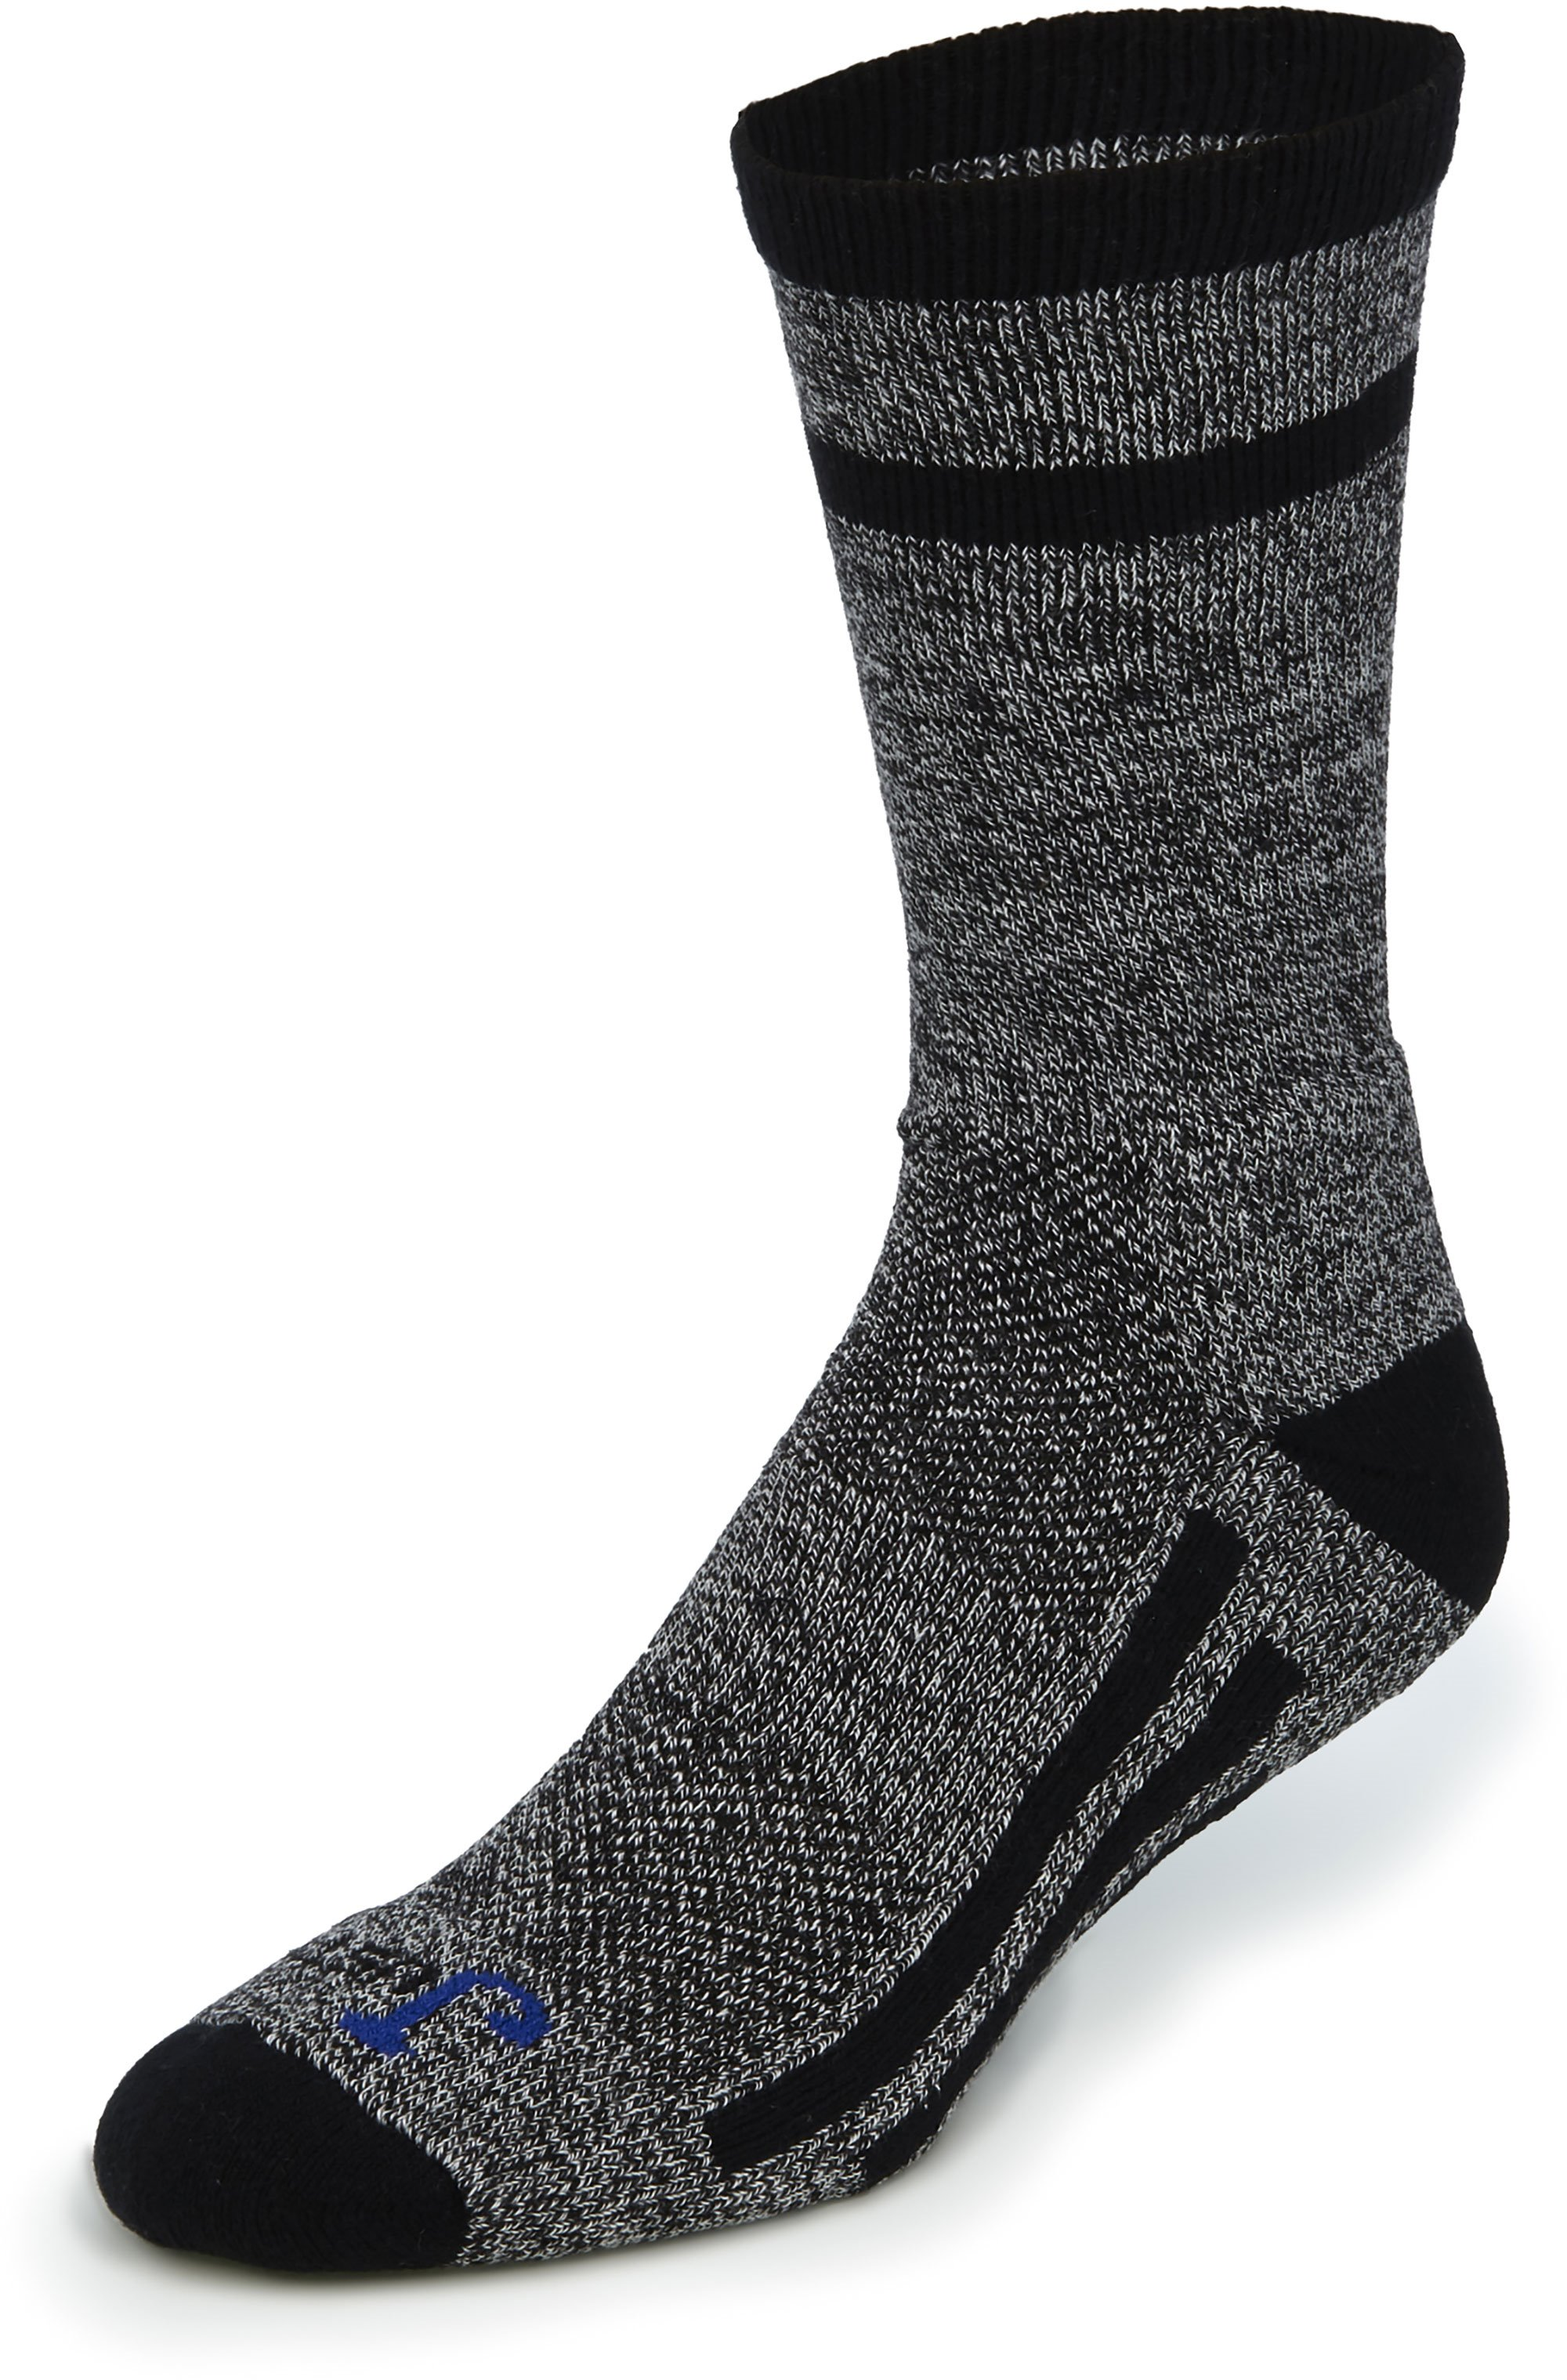 Product Image for style SOX9587GB